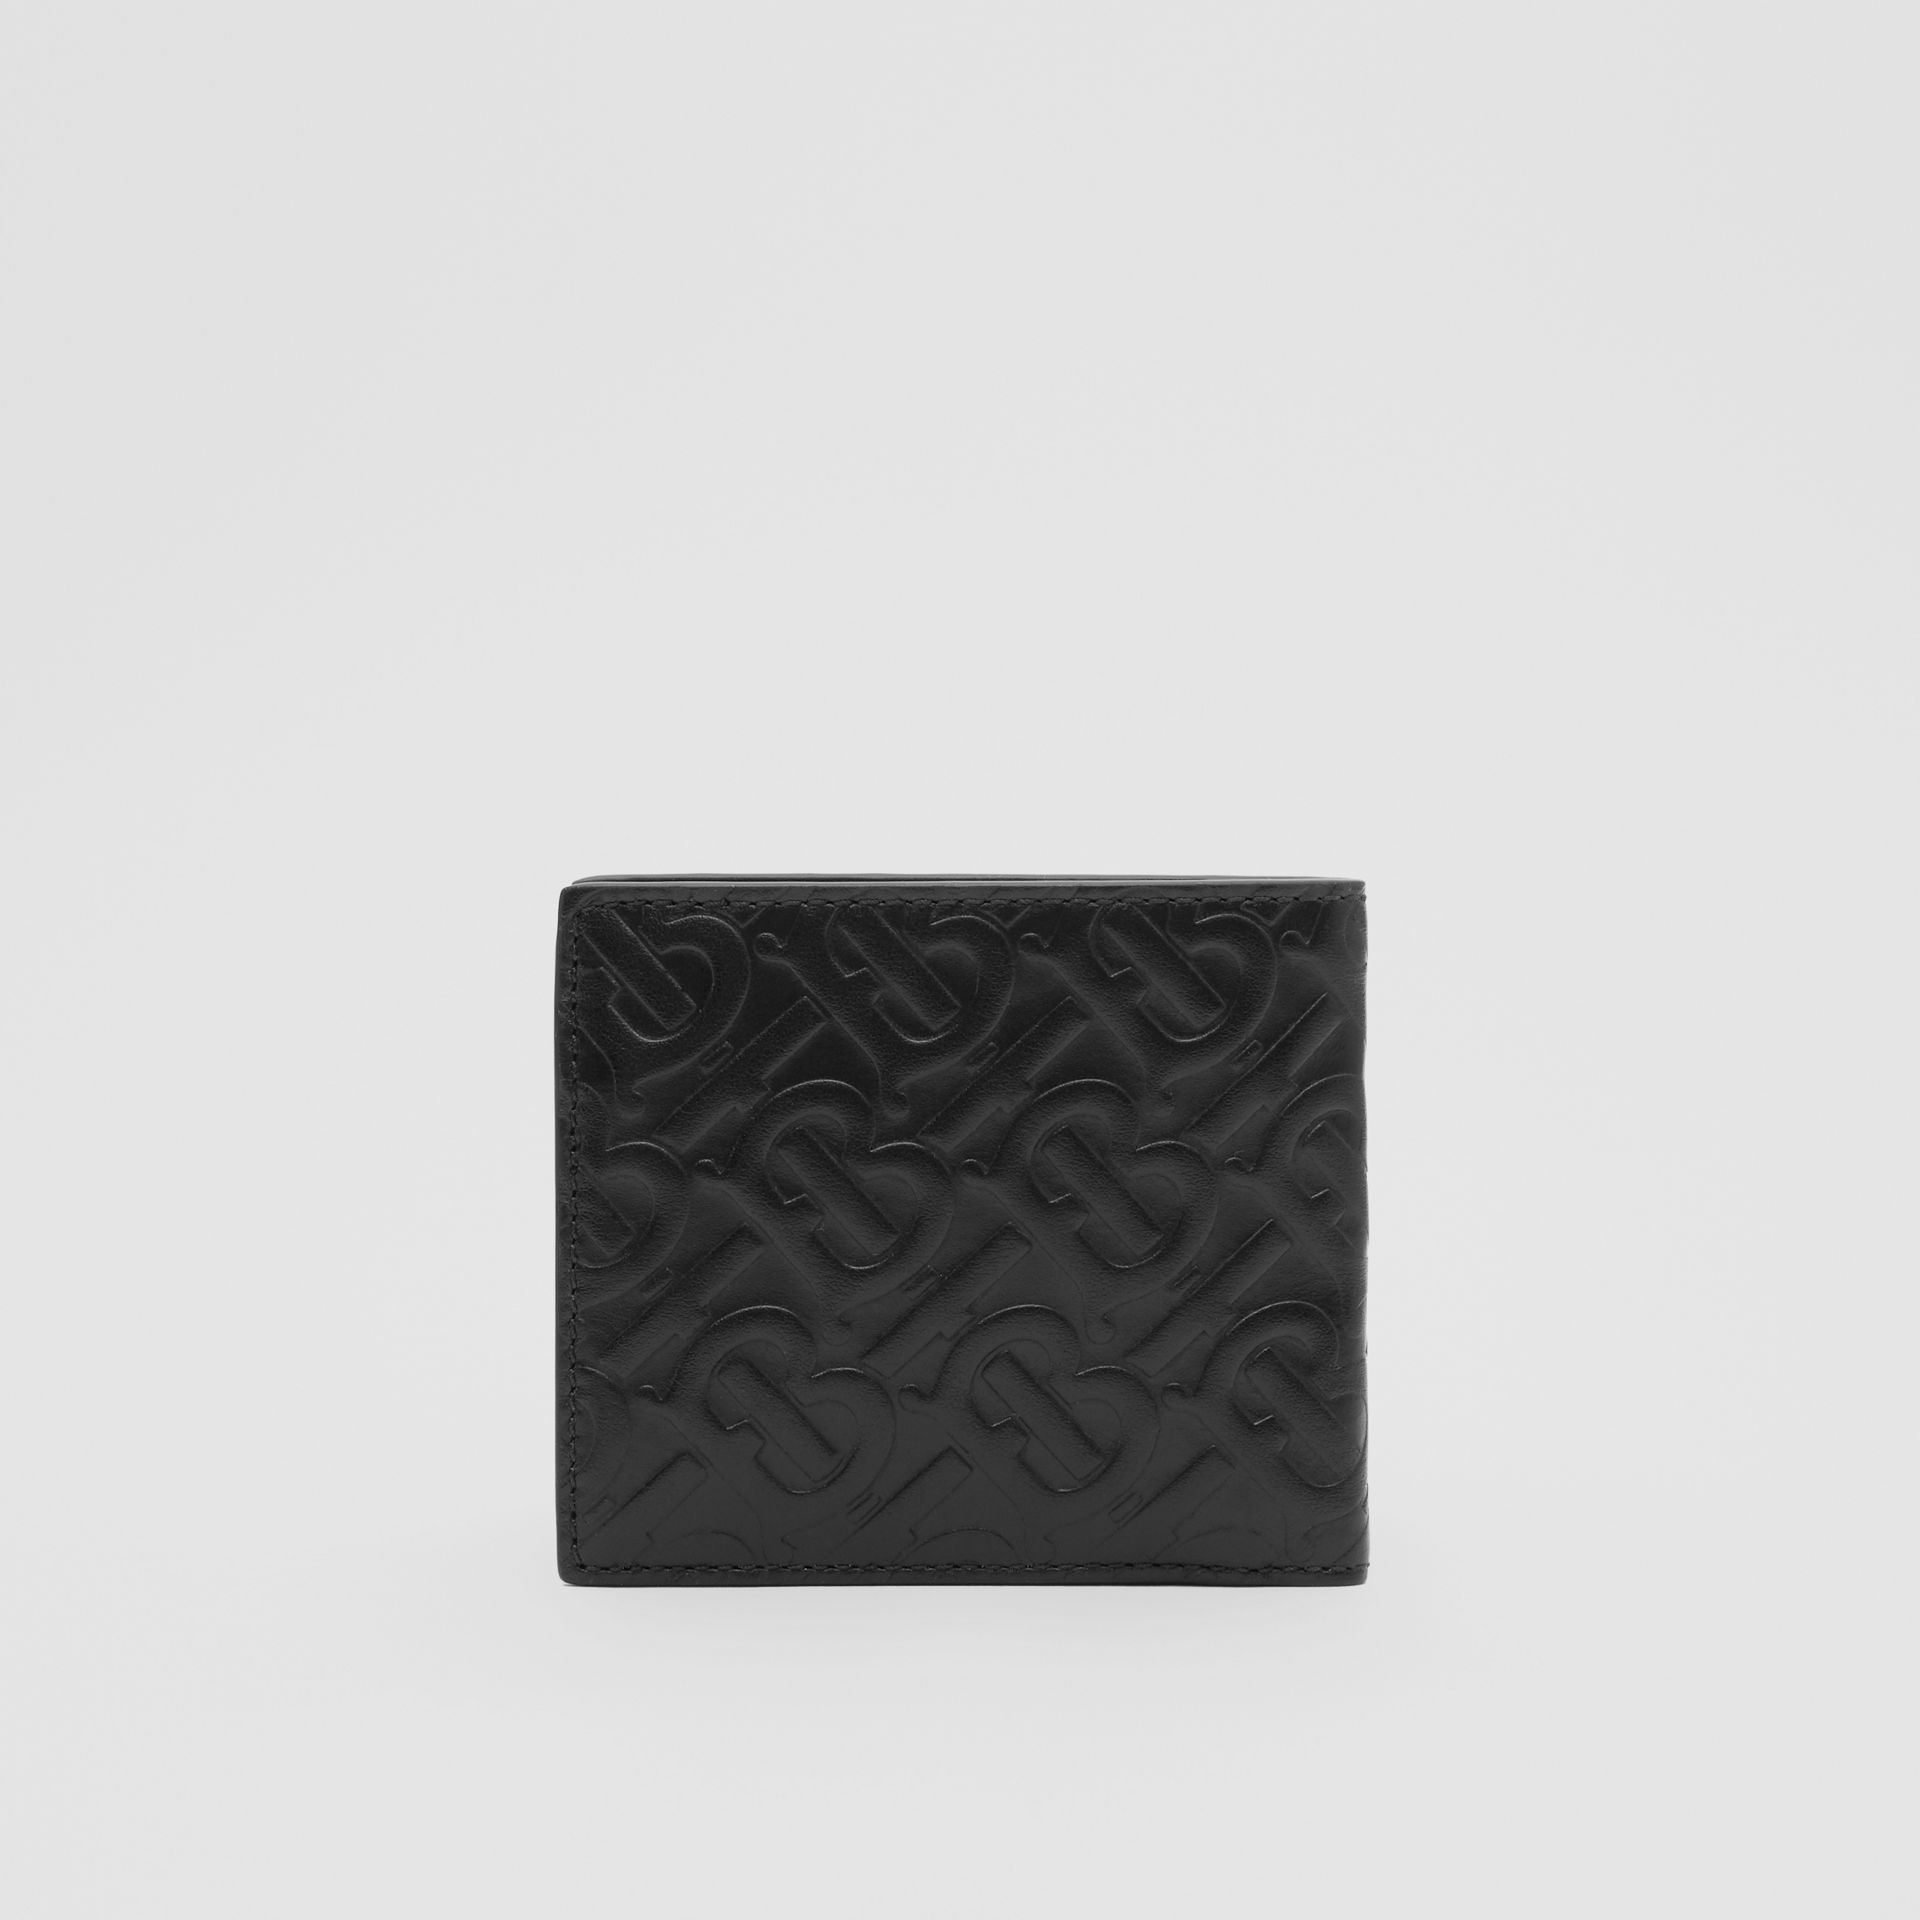 Monogram Leather International Bifold Coin Wallet in Black - Men | Burberry United States - gallery image 4